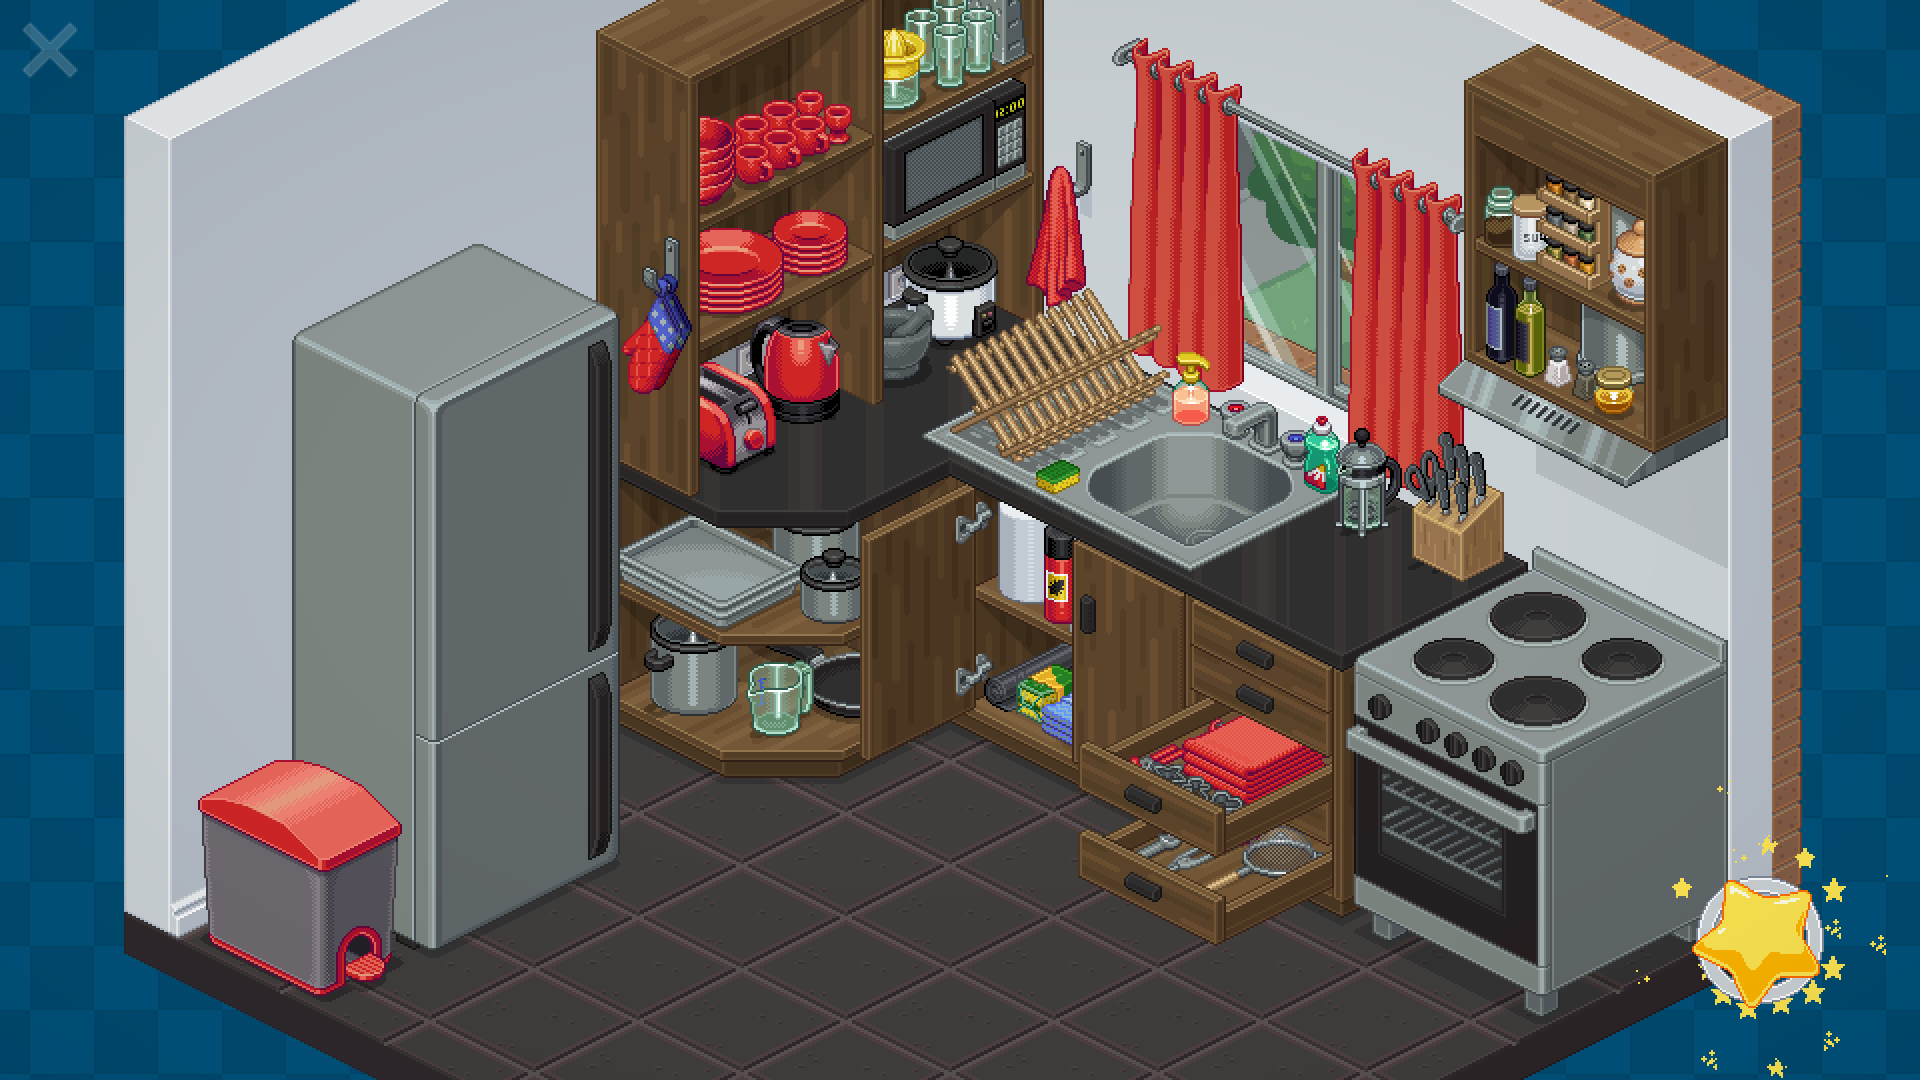 Isometric pixel art kitchen full of appliances and utensils